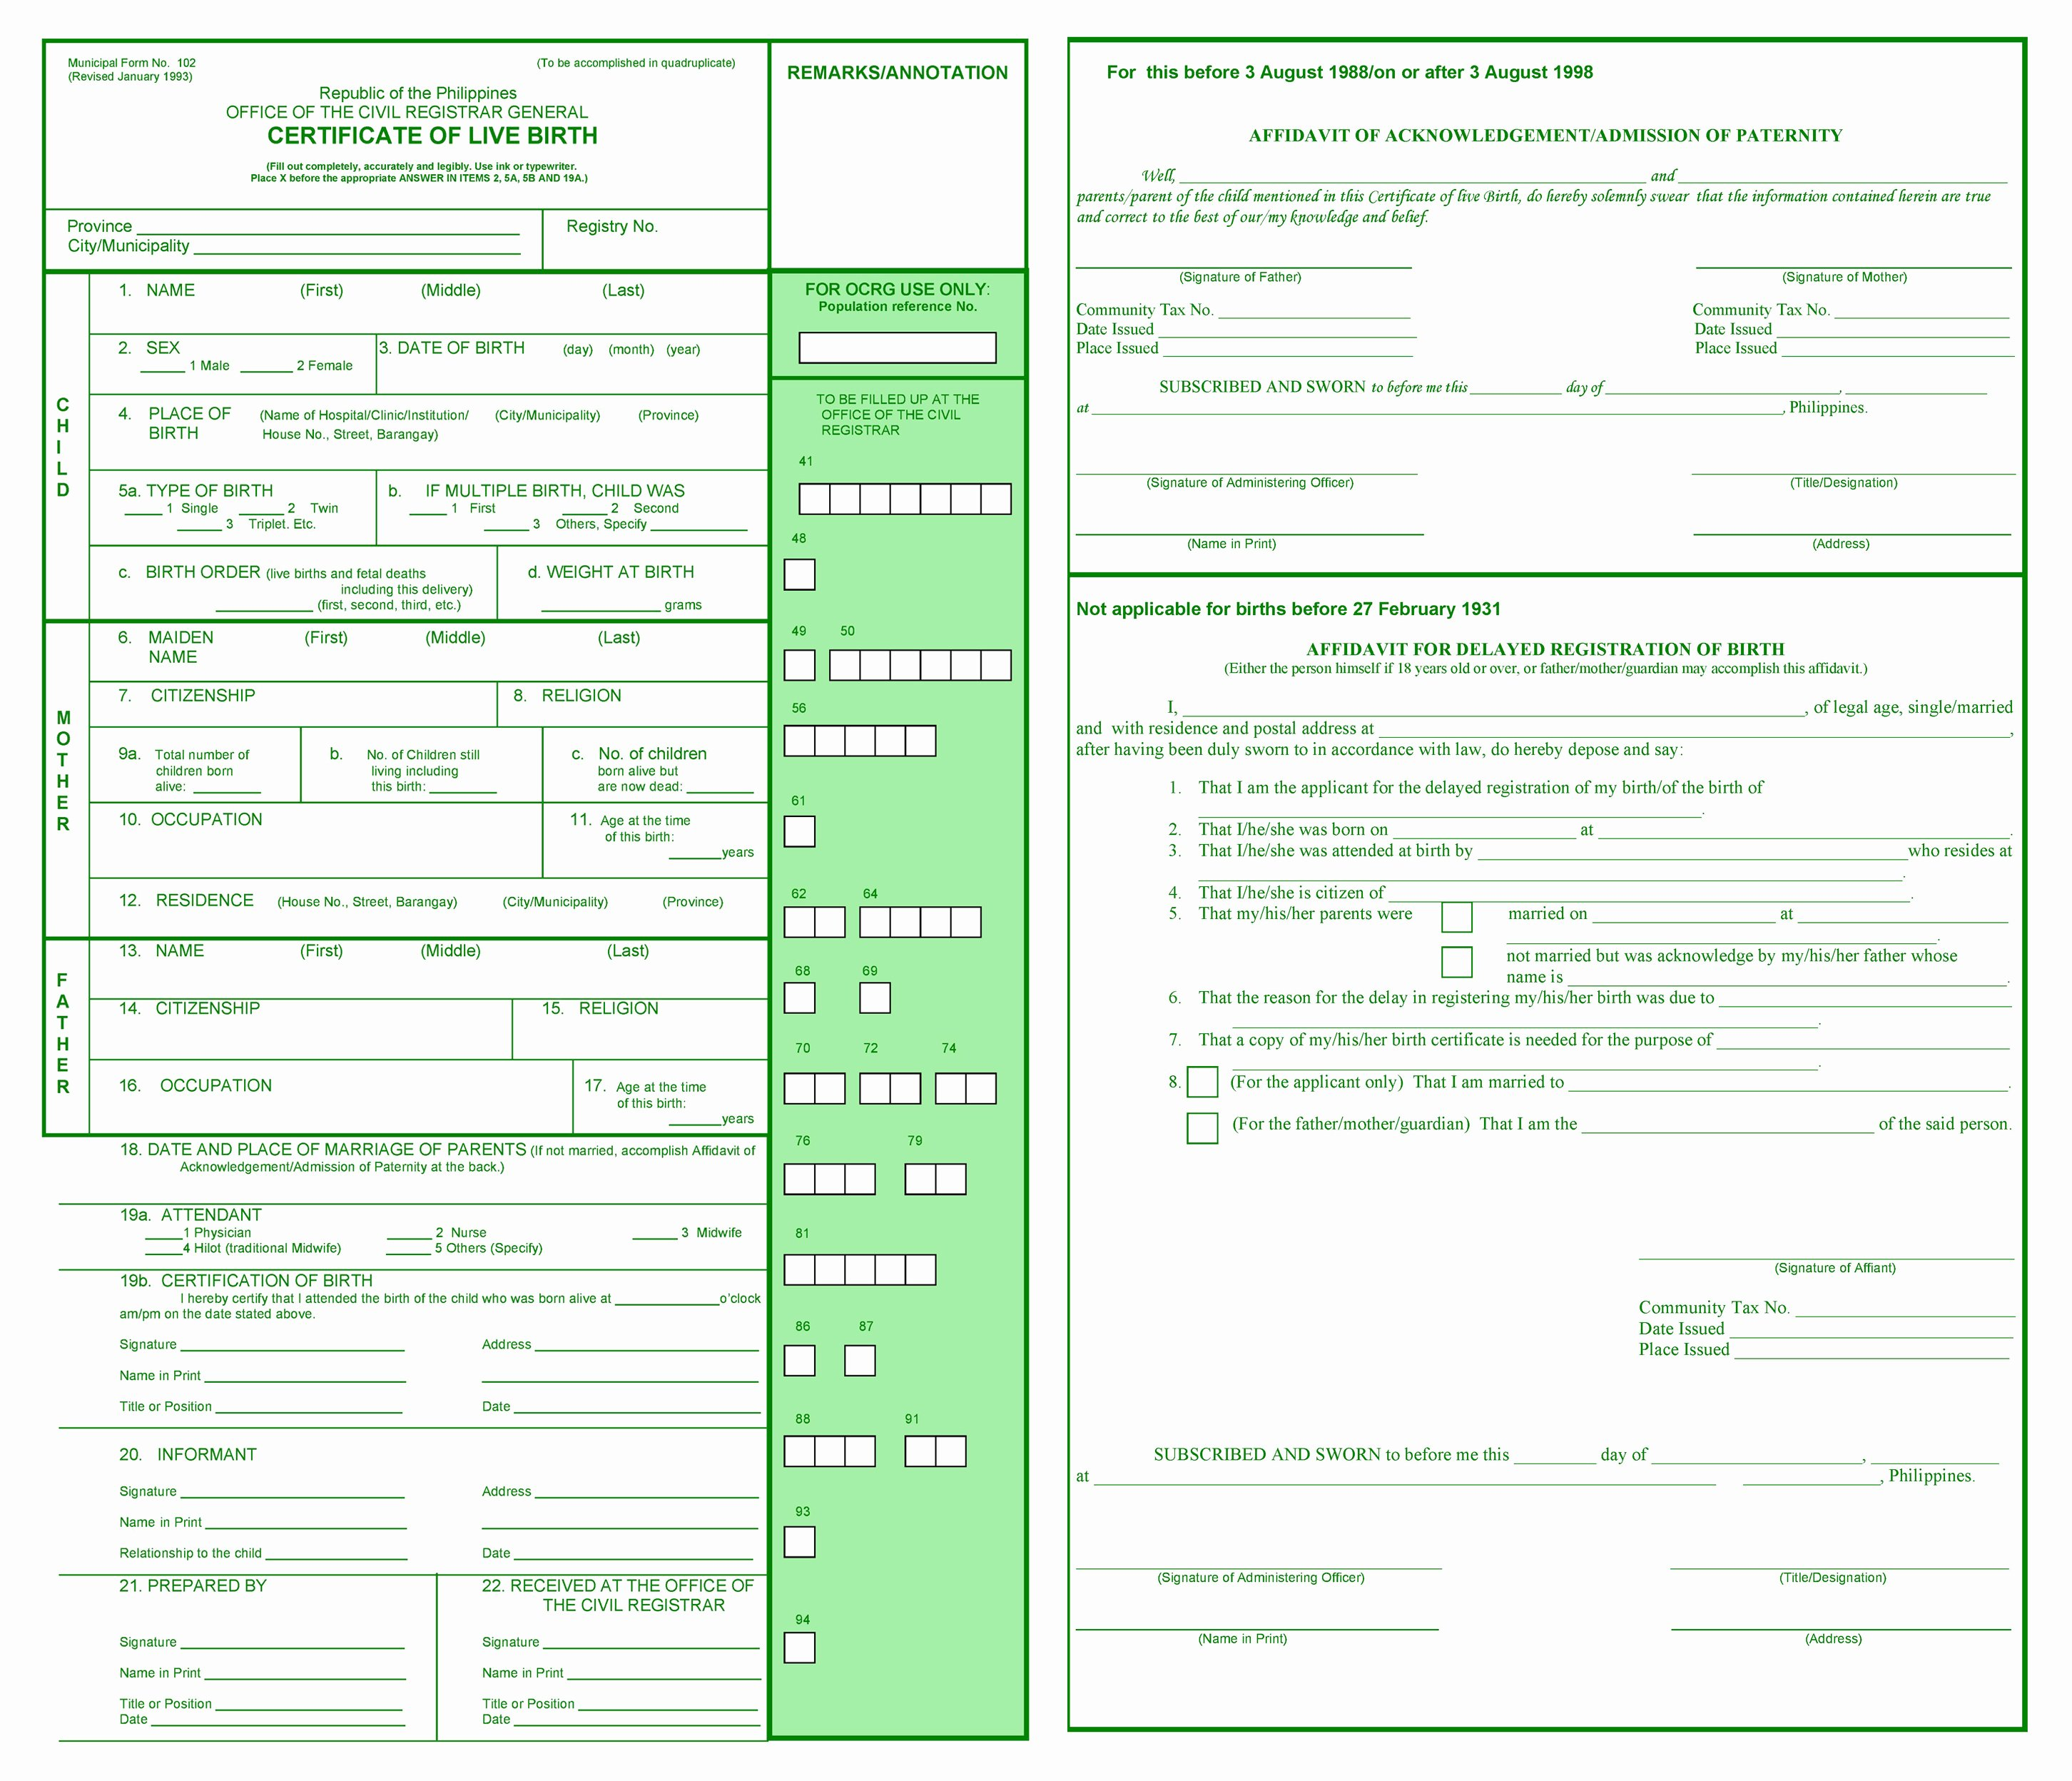 Certificate Of Live Birth Template Fresh Tips when Filling Out the Certificate Of Live Birth Part